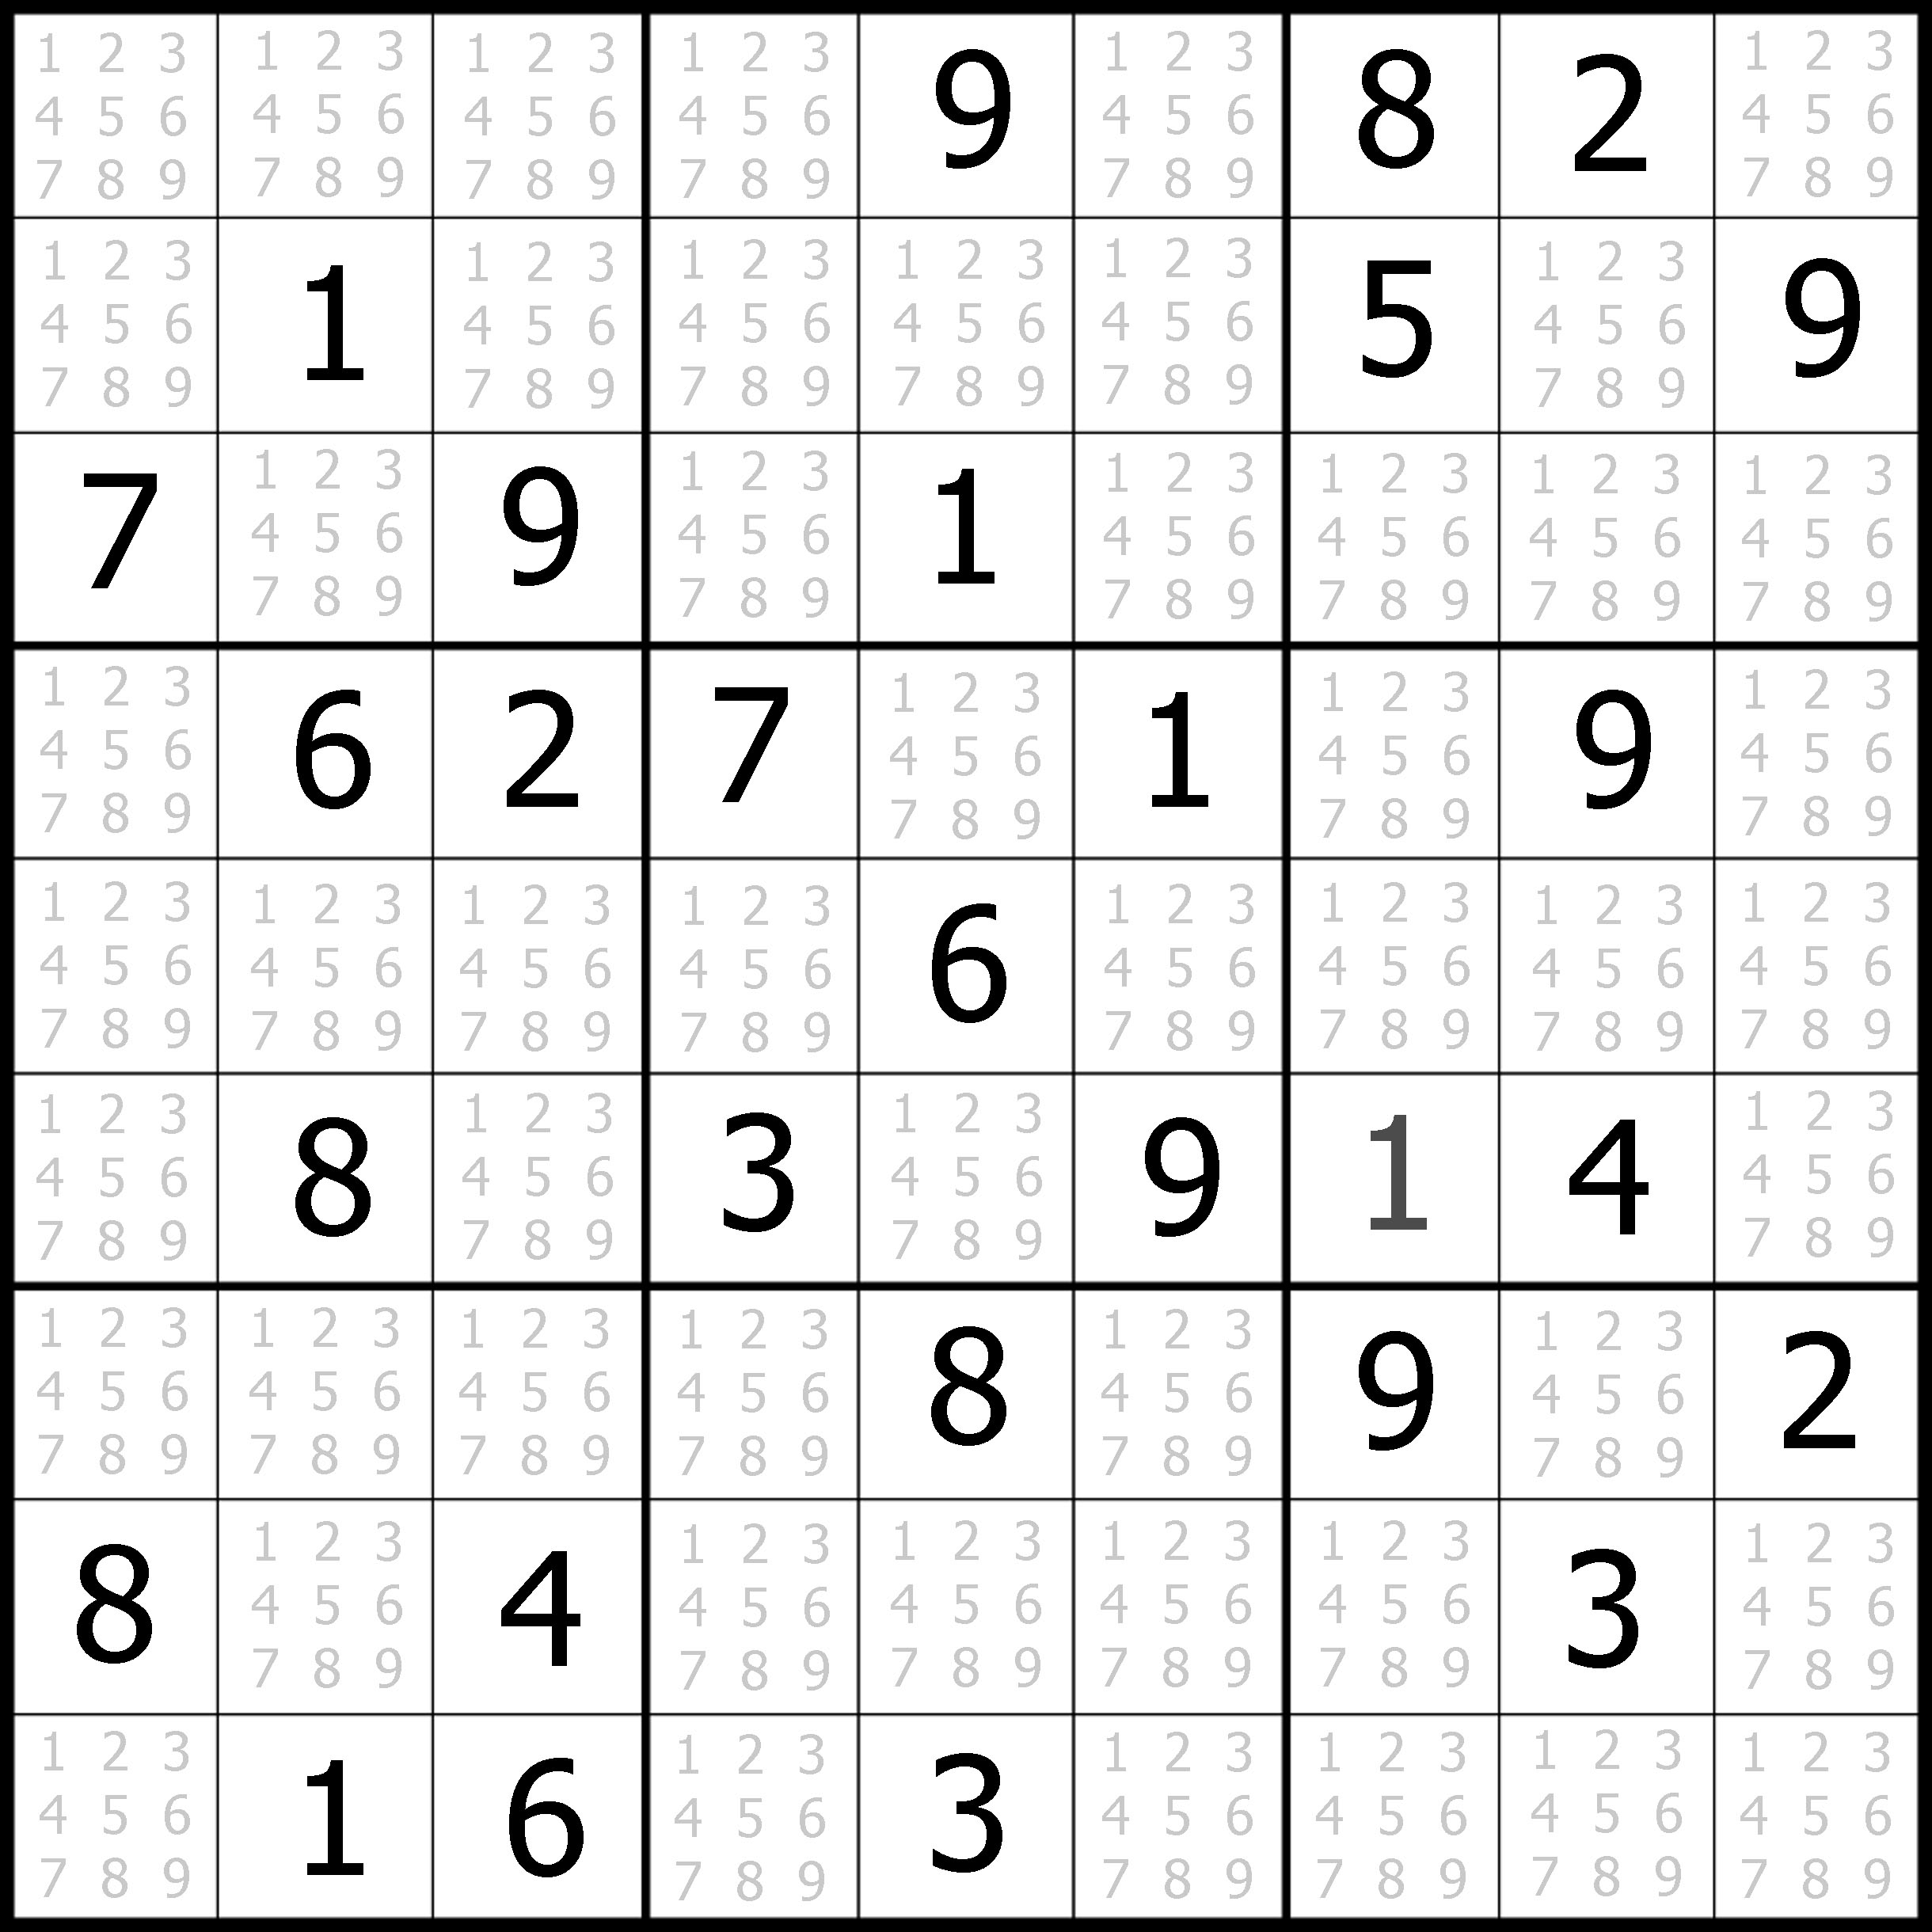 Sudoku Puzzler | Free, Printable, Updated Sudoku Puzzles With A - Printable Sudoku Puzzles Easy #1